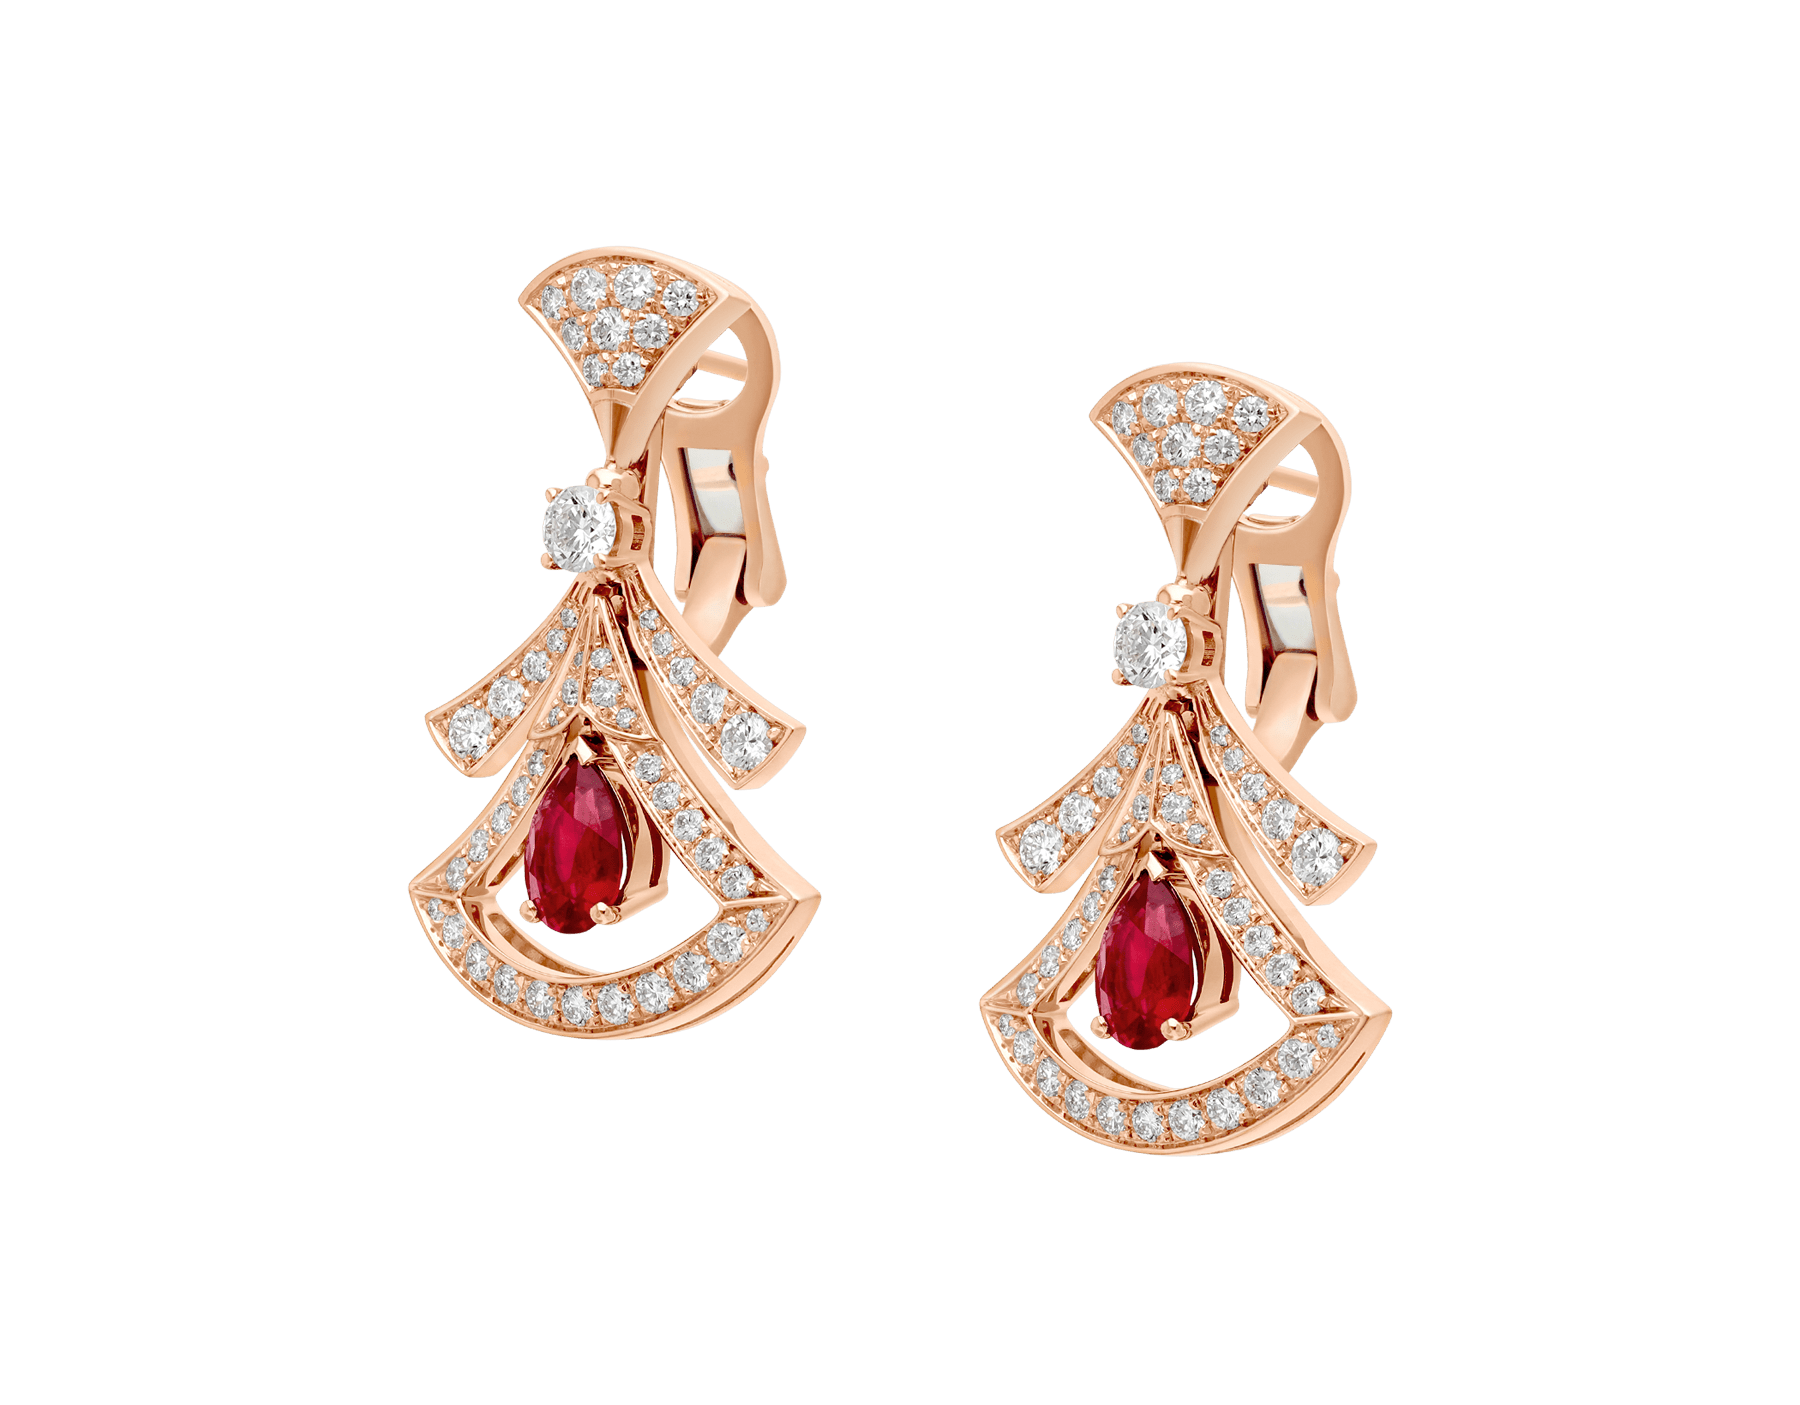 DIVAS' DREAM 18 kt rose gold openwork earrings, set with pear-shaped rubies, round brilliant-cut and pavé diamonds. 356954 image 2